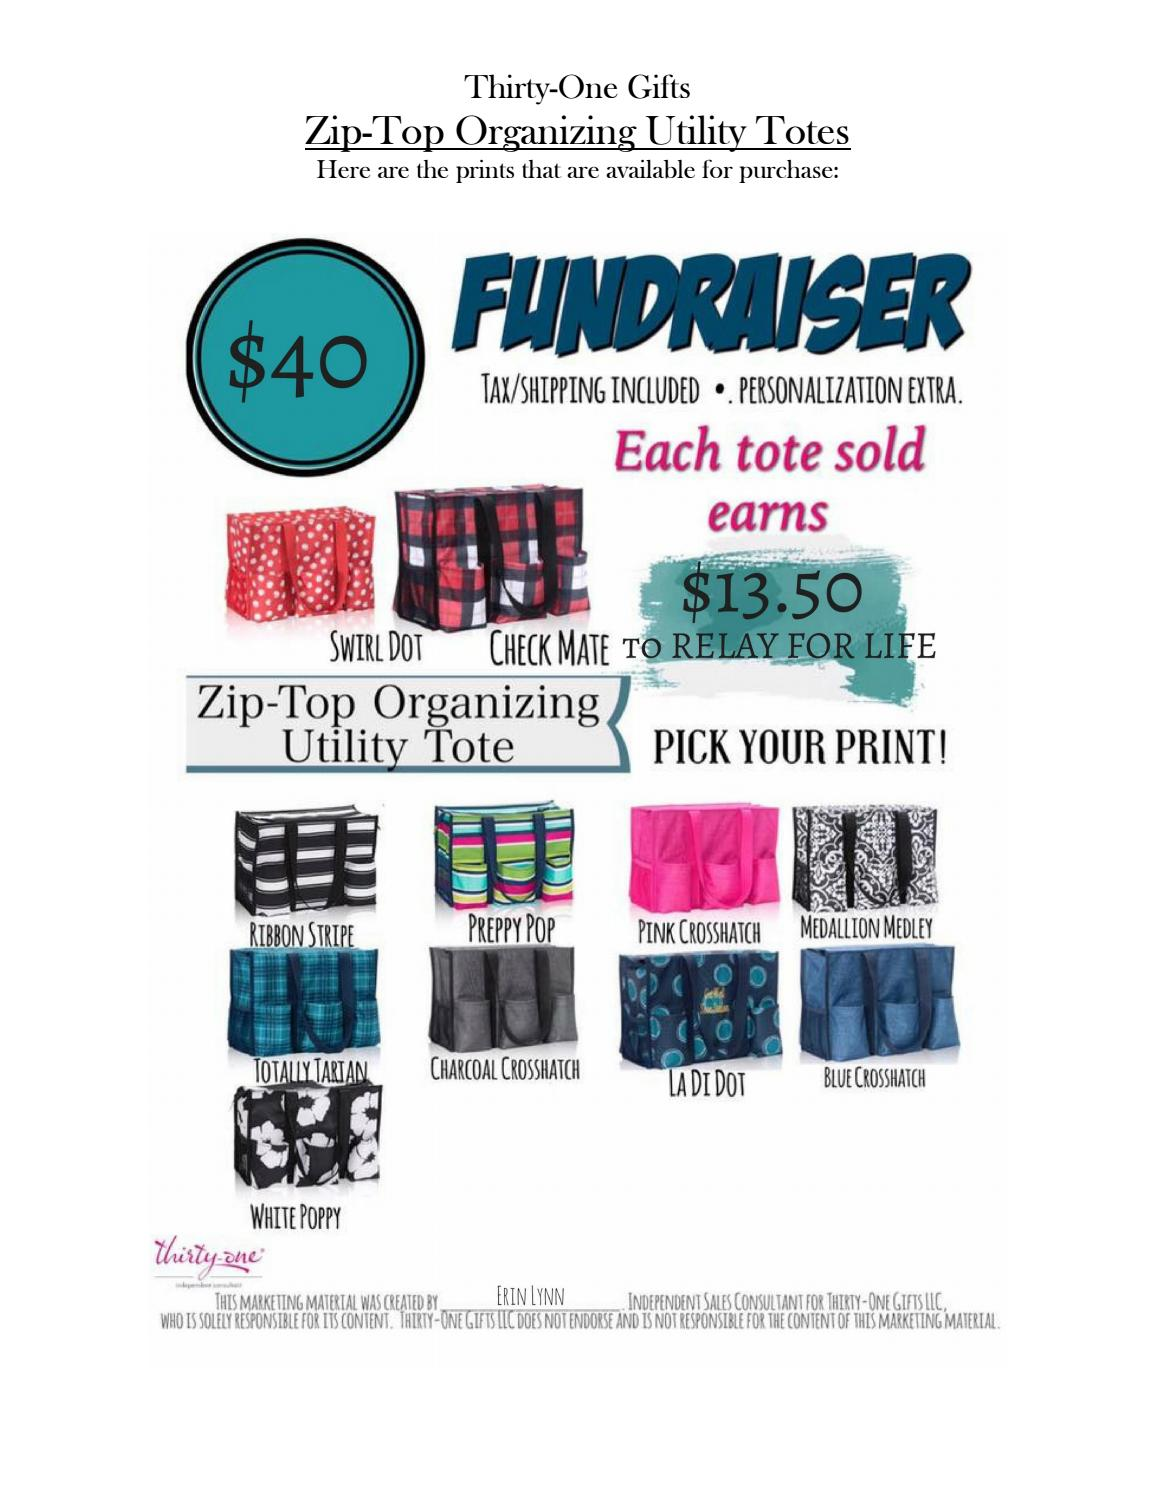 Relay For Life Fundraiser Zip Top Organizing Utility Tote Booklet